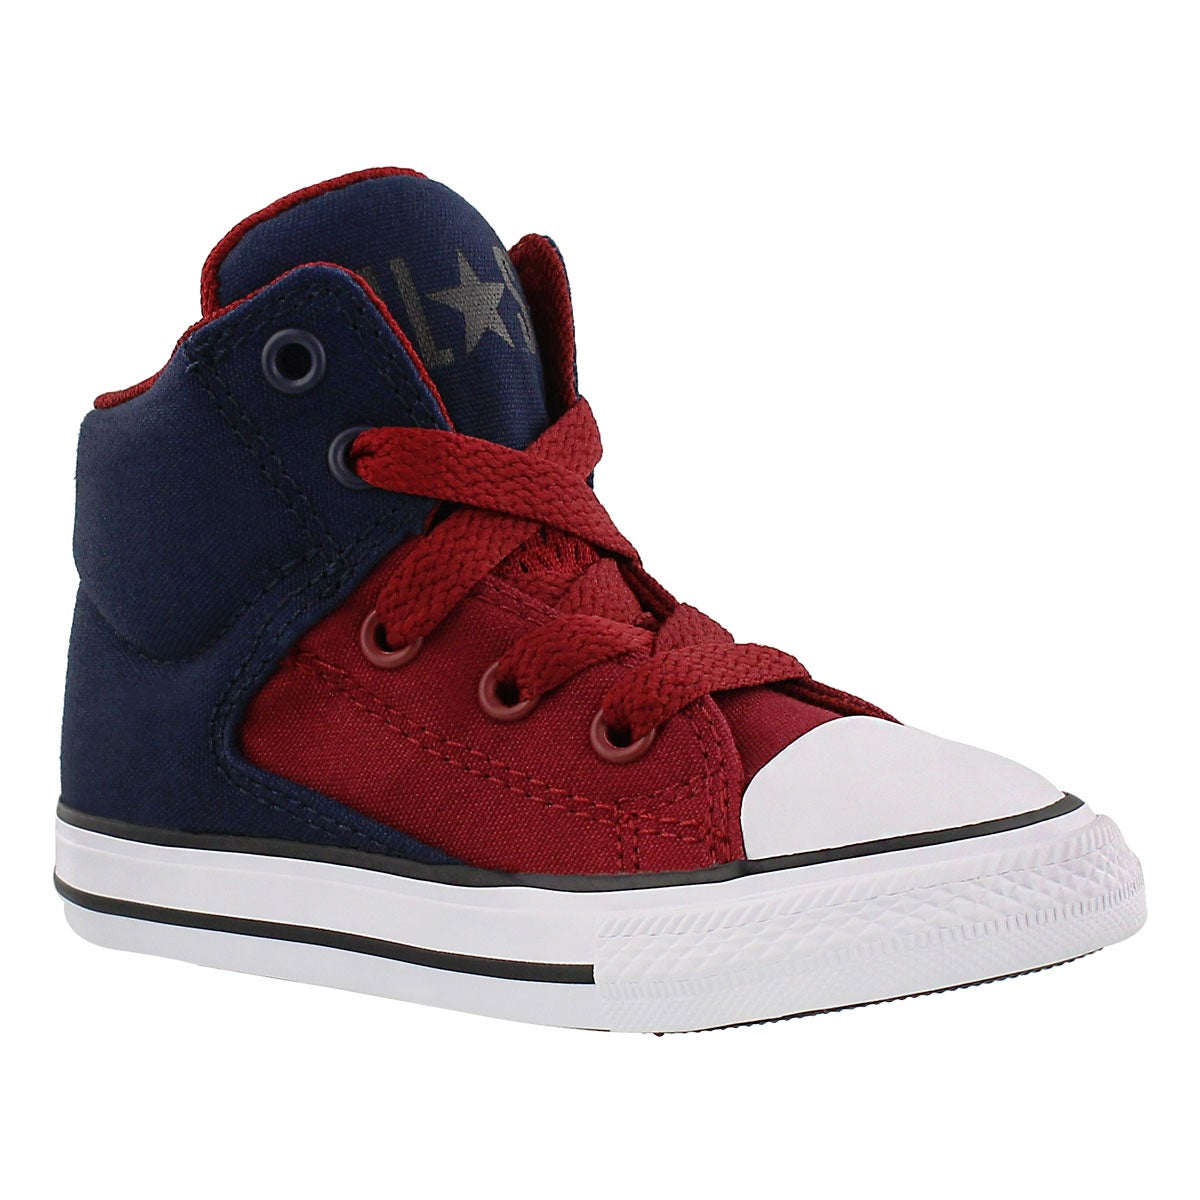 Infants' HIGH STREET HI obsidian/red sneakers